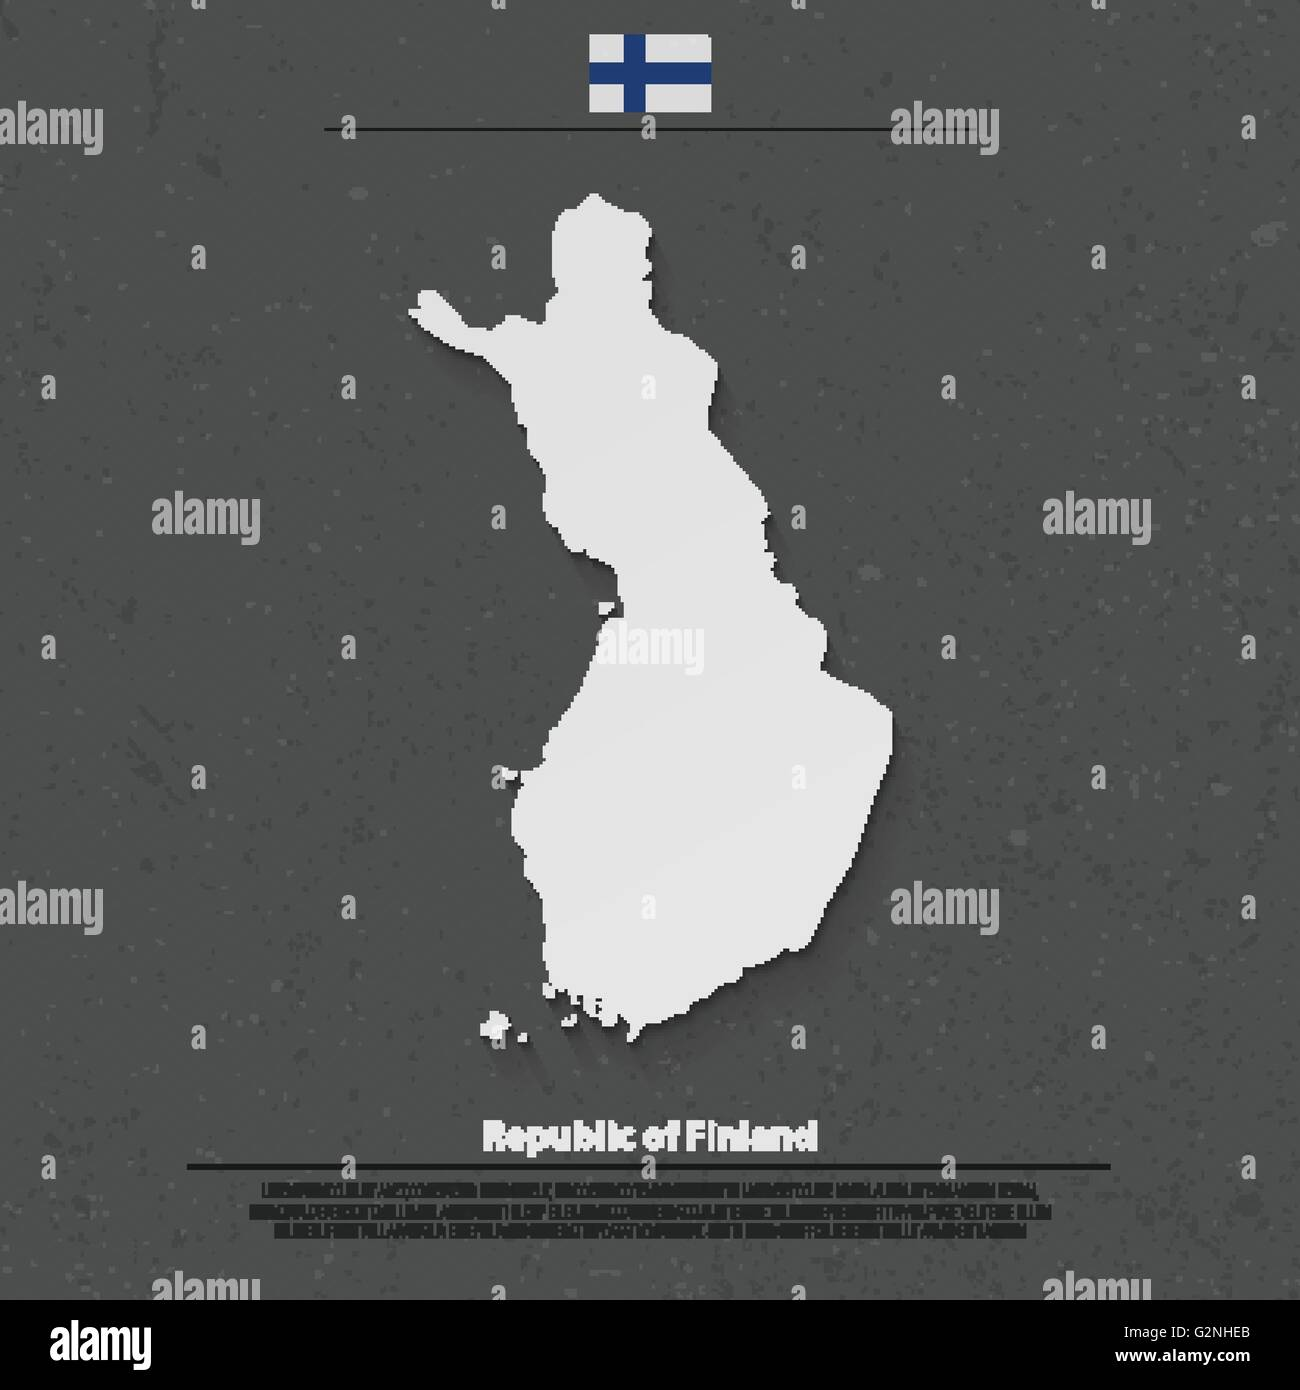 Republic of Finland isolated map and official flag icons. vector Finnish political map 3d illustration. Suomi geographic - Stock Vector